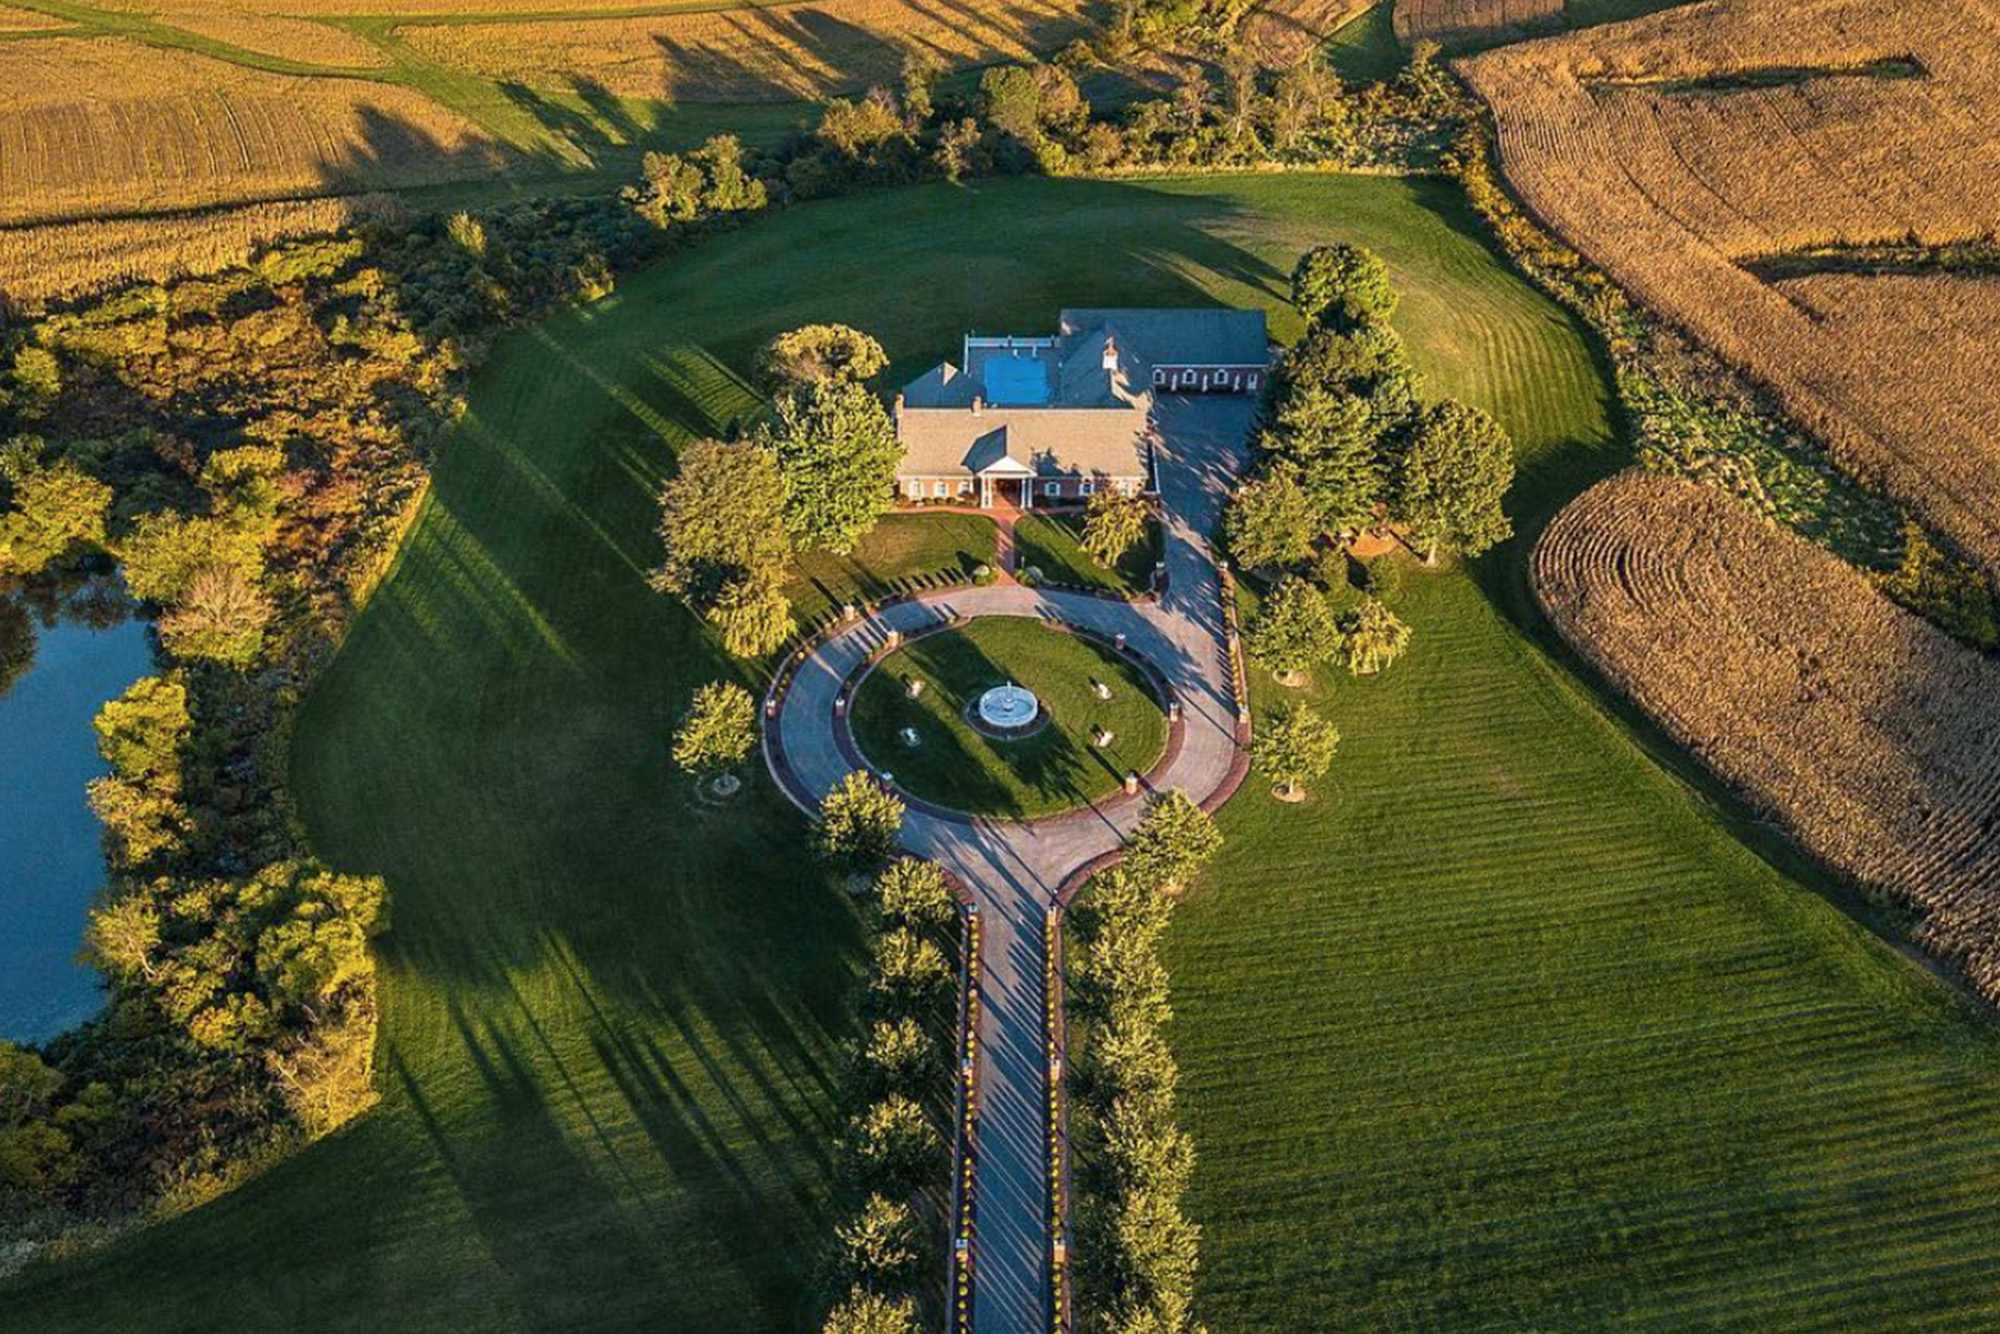 aerial view of mansion with circle driveway surrounded by corn fields and a large pond